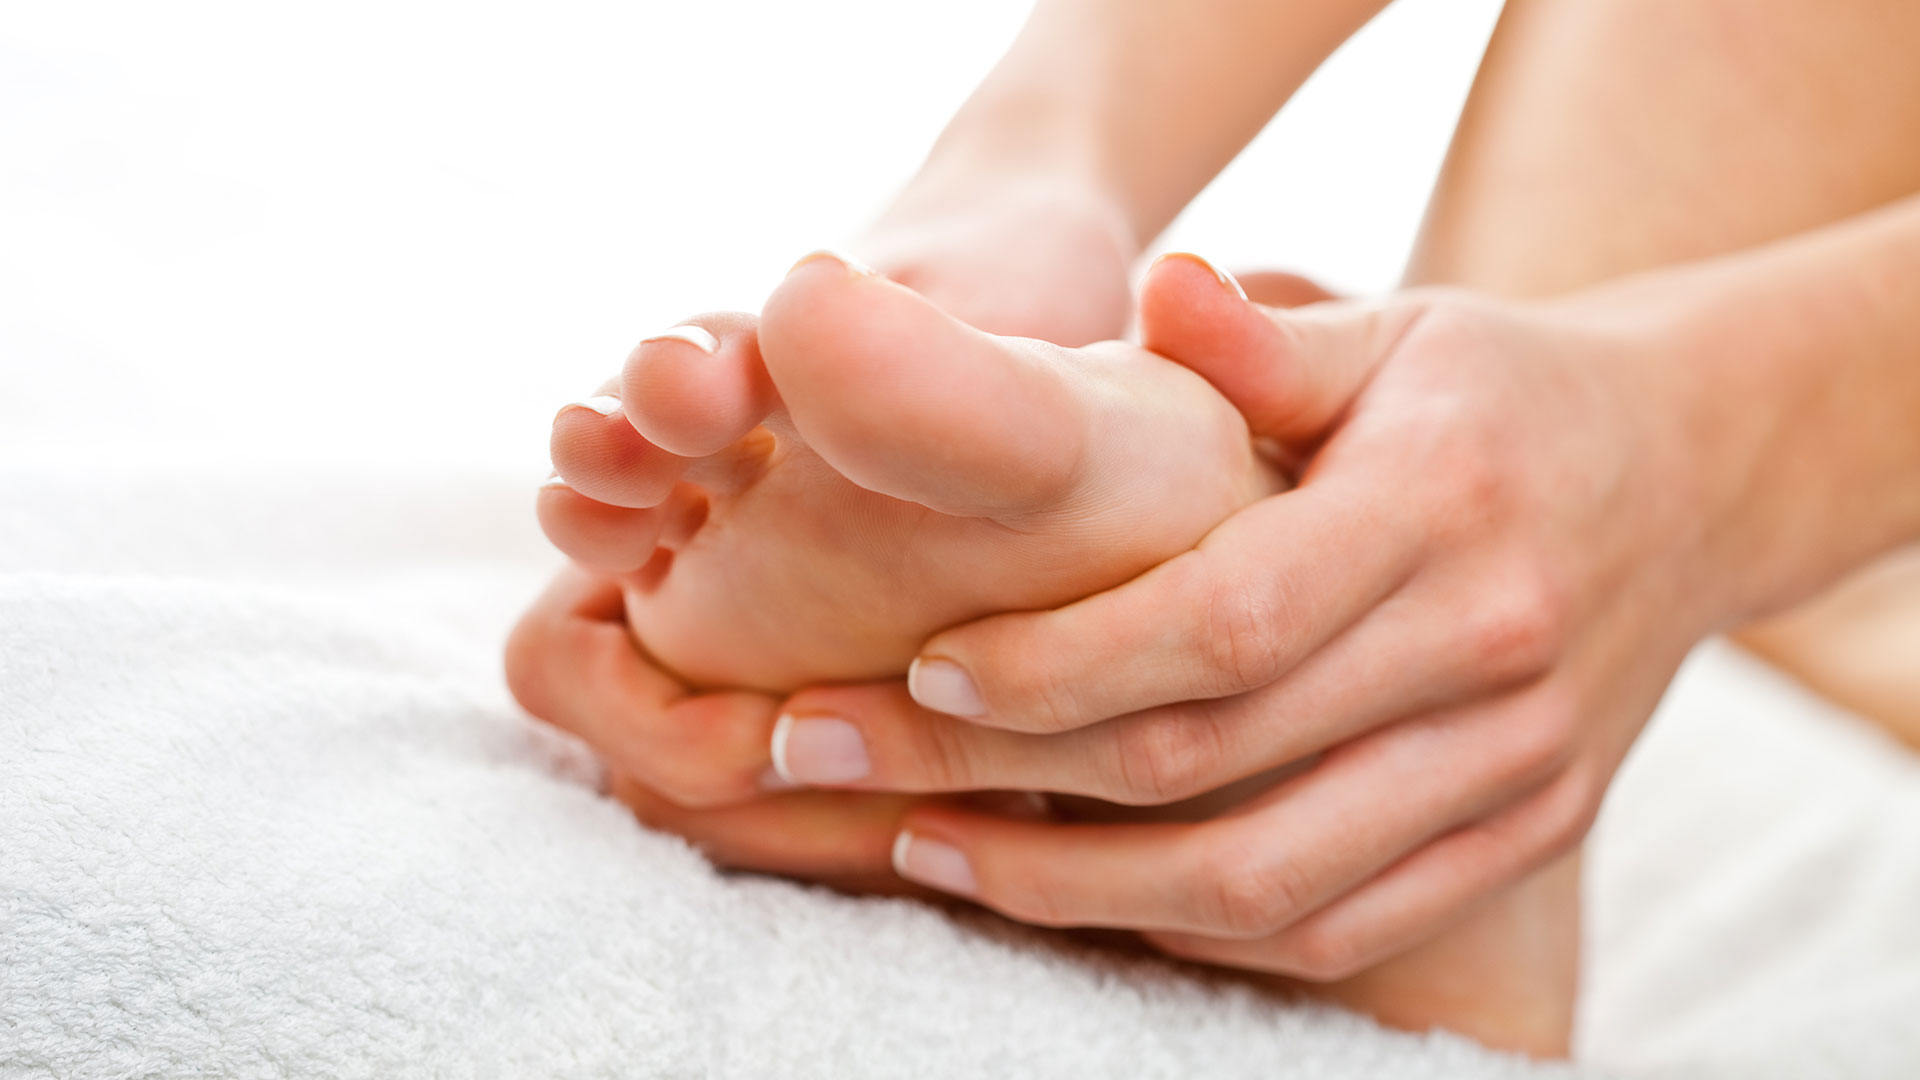 Bones on the big toes - effective treatments 24